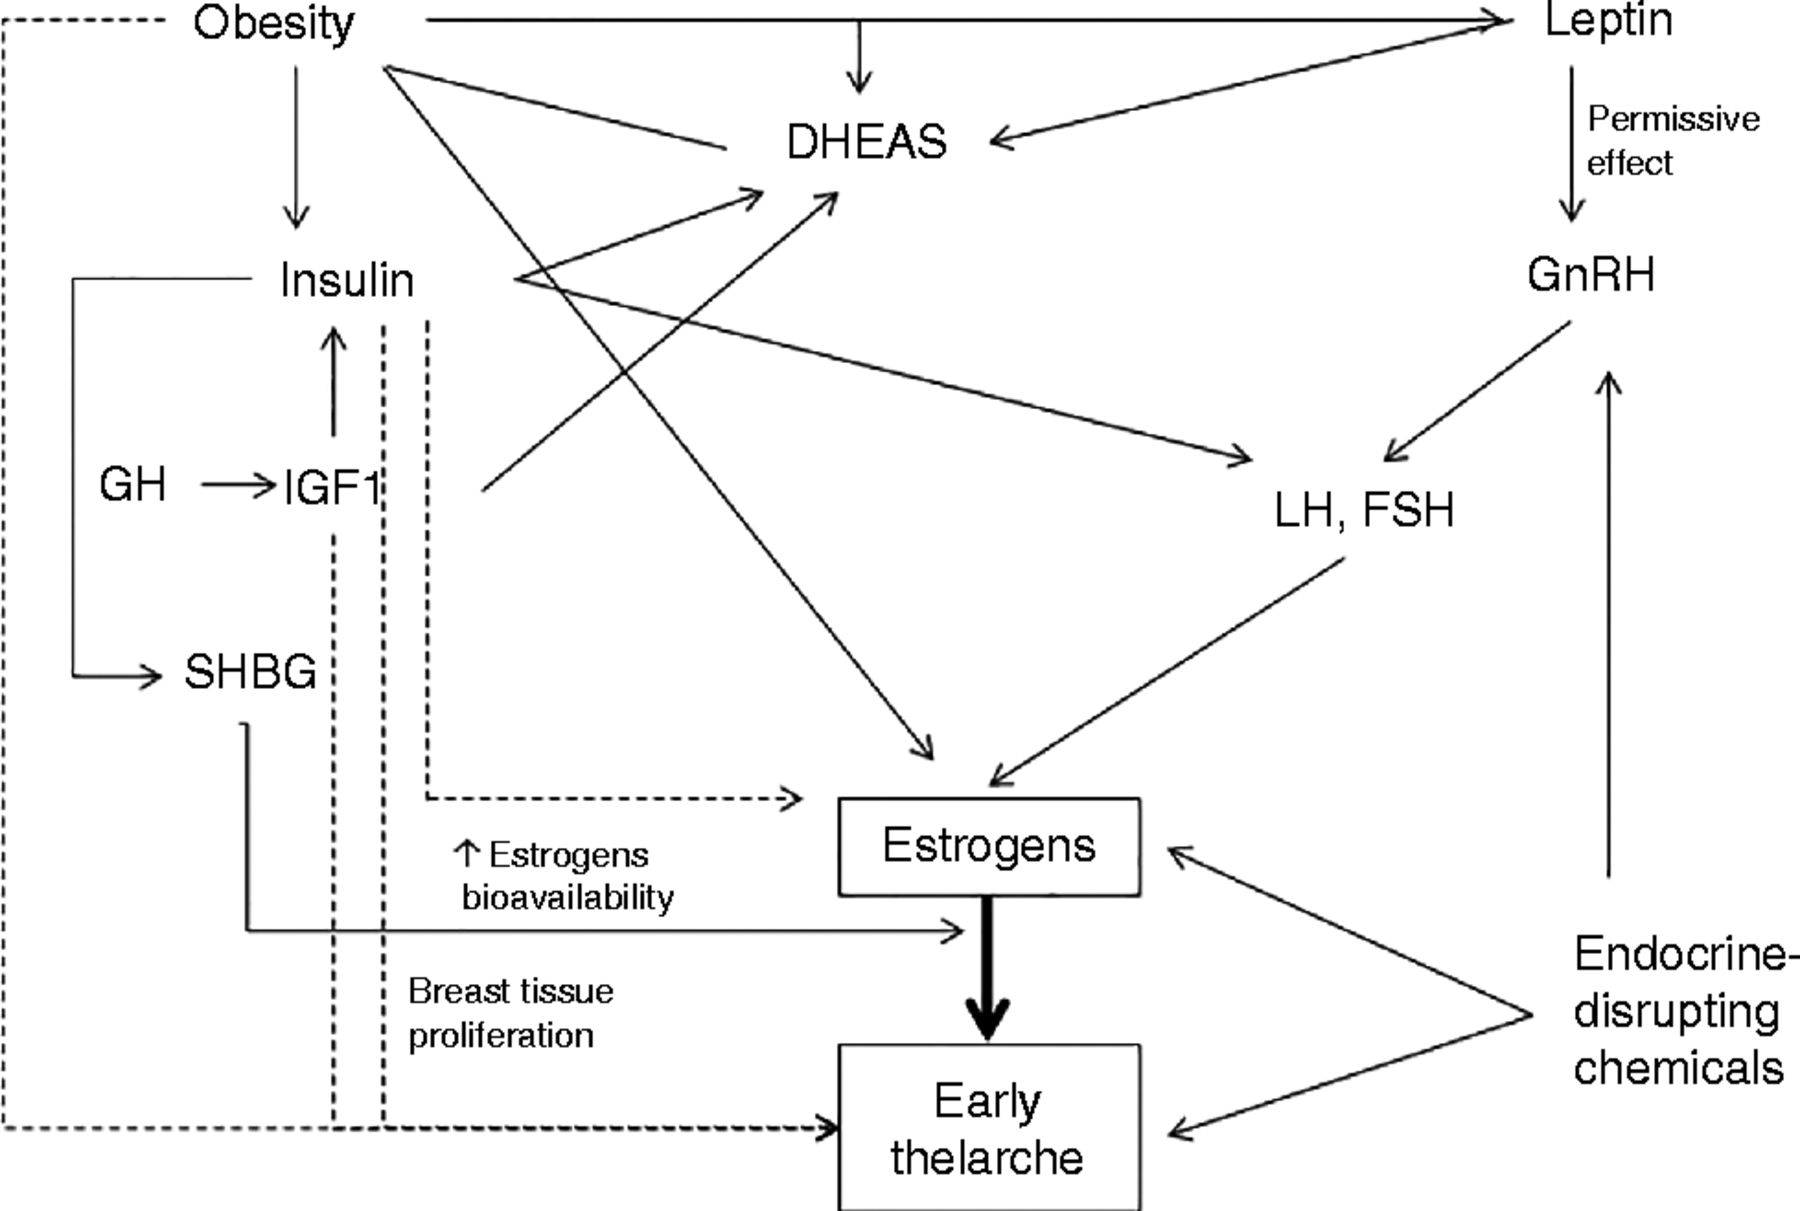 Ultrasensitive Estrogen Levels At 7 Years Of Age Predict Earlier